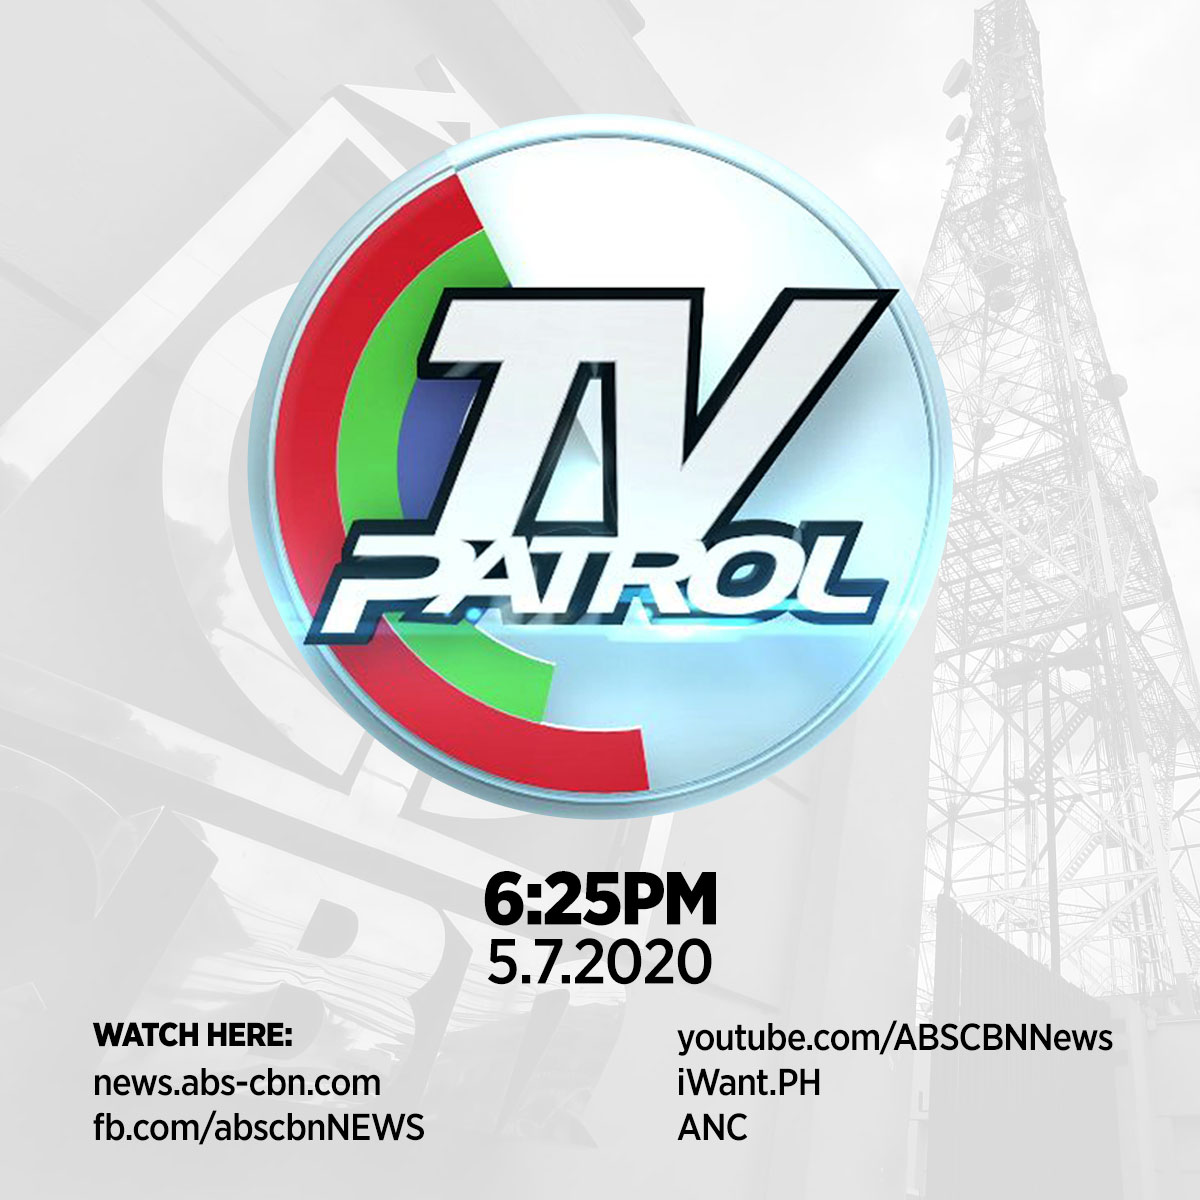 May magbabalik. Abangan mamaya.   #TVPatrol https://t.co/EriD1tPdcd